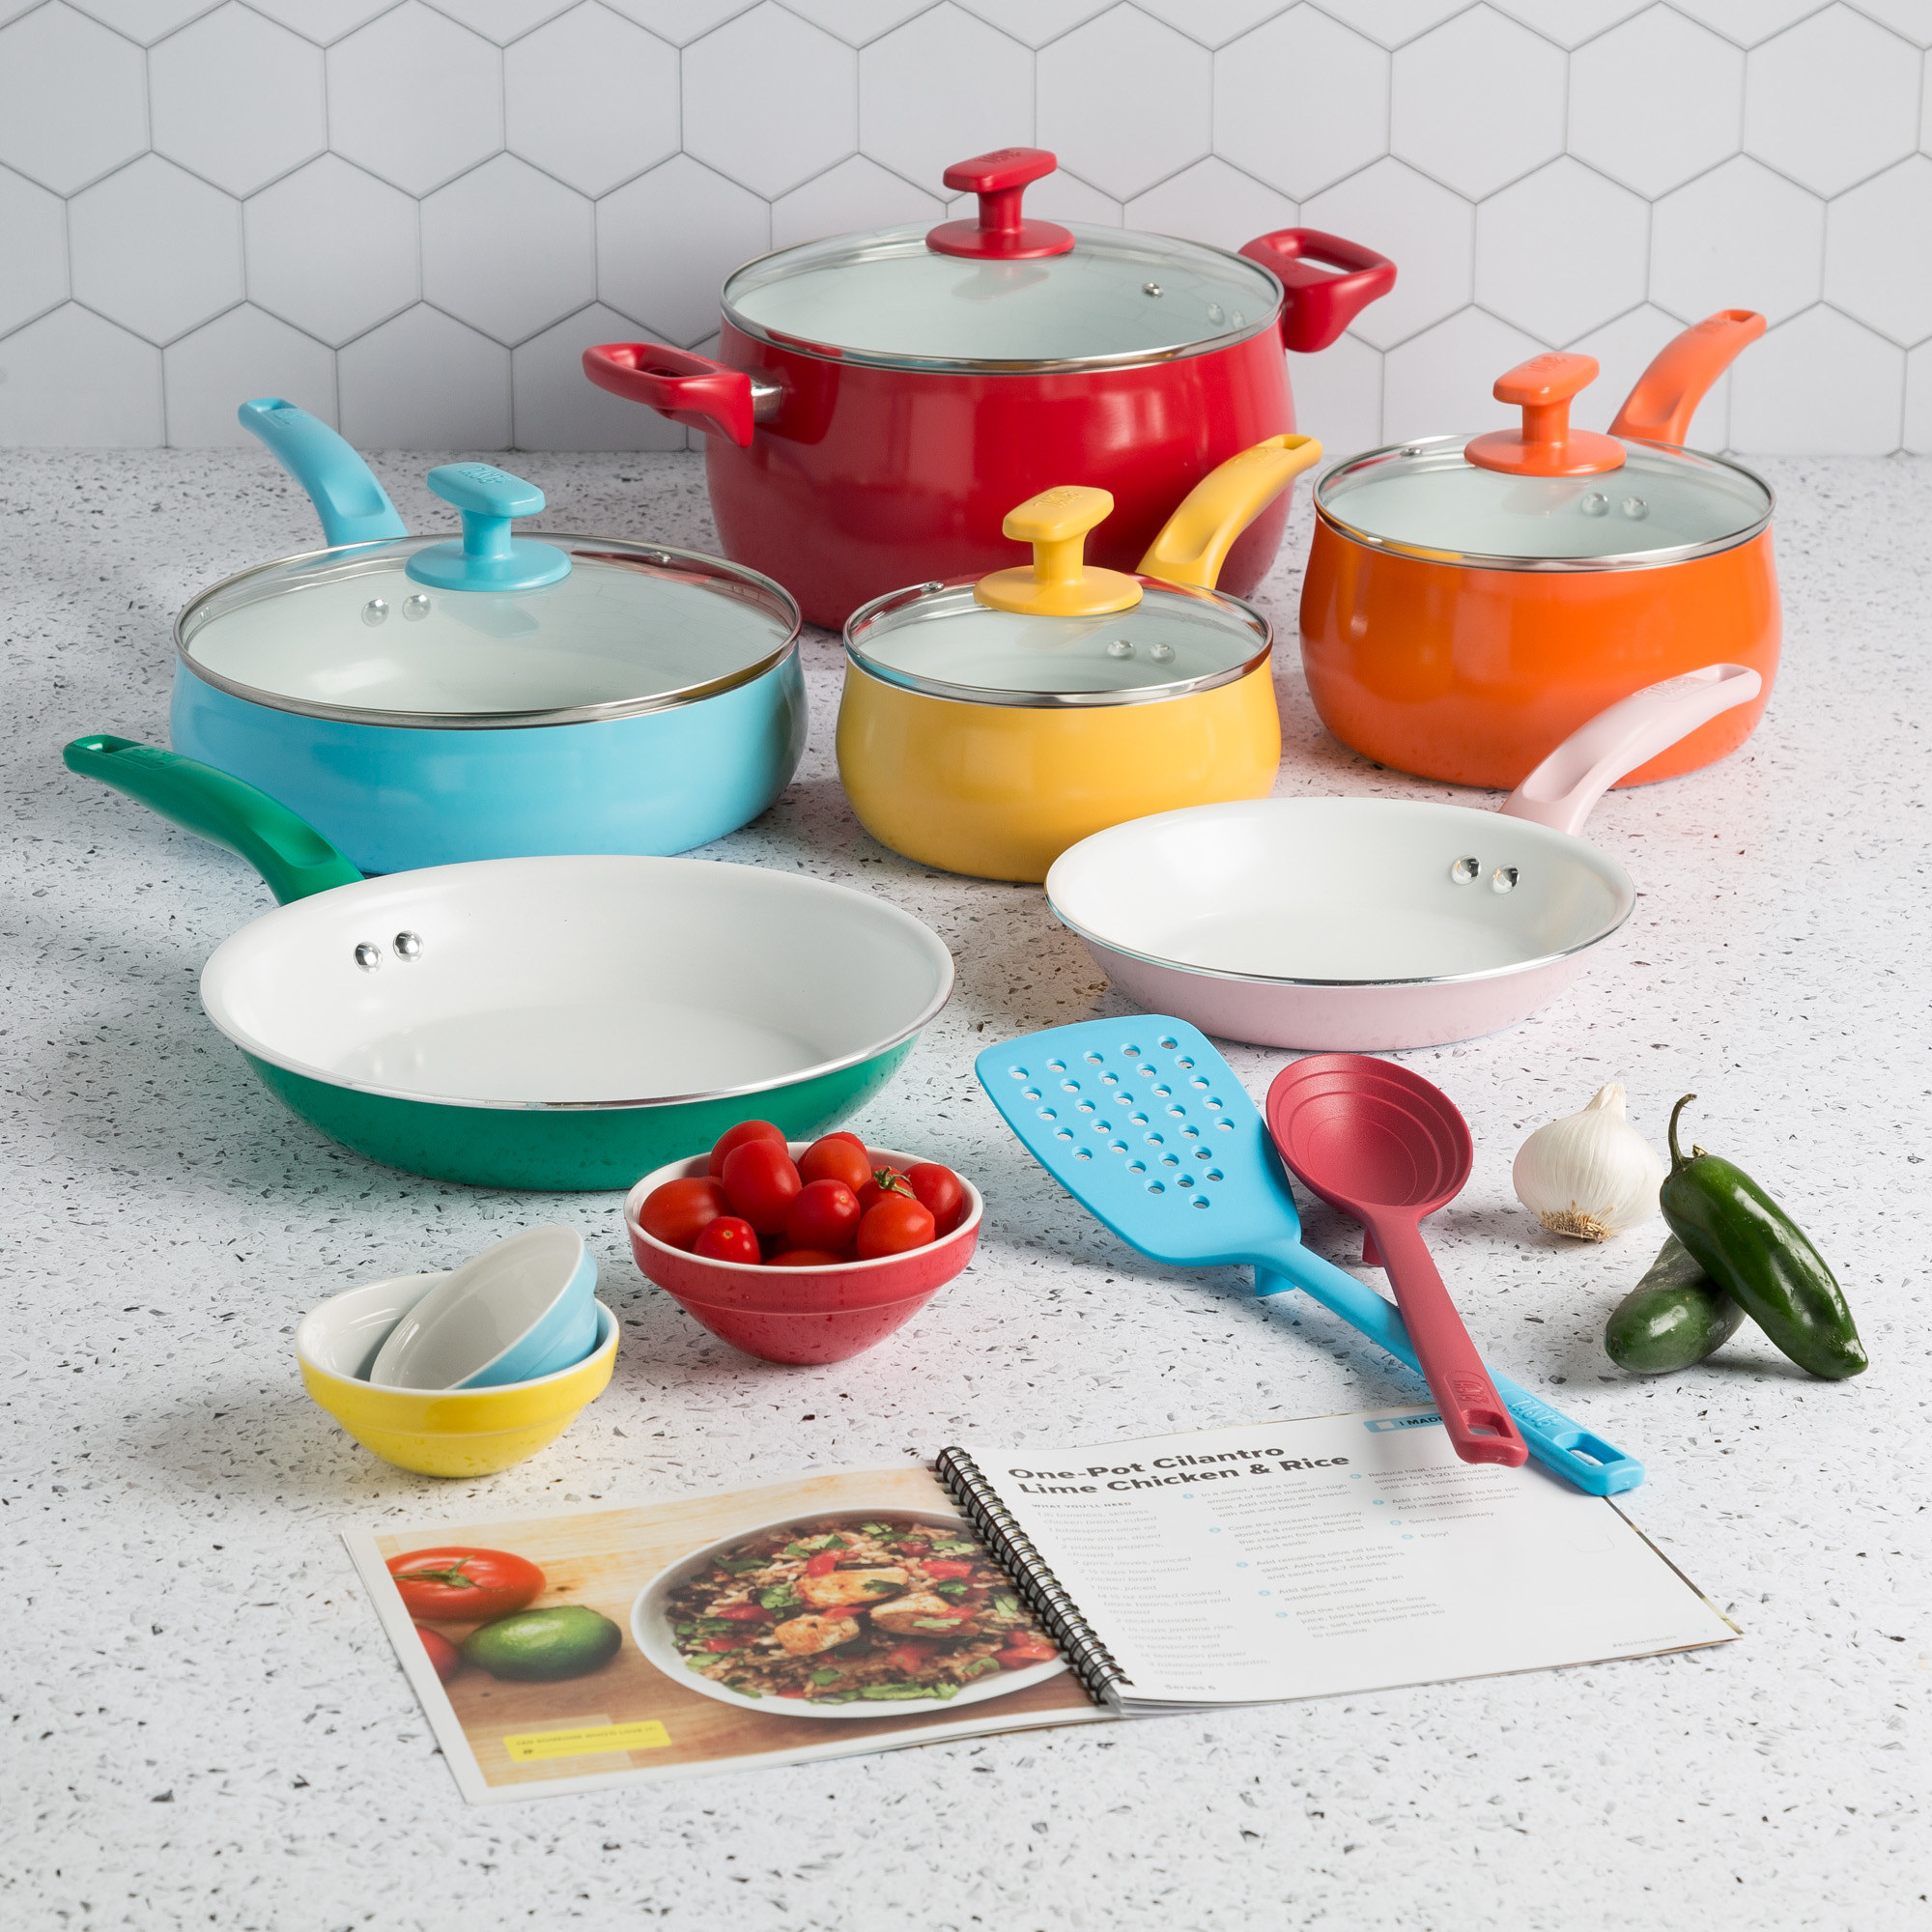 the multicolor Tasty Ceramic Titanium-Reinforced Non-Stick Cookware Set on a kitchen counter